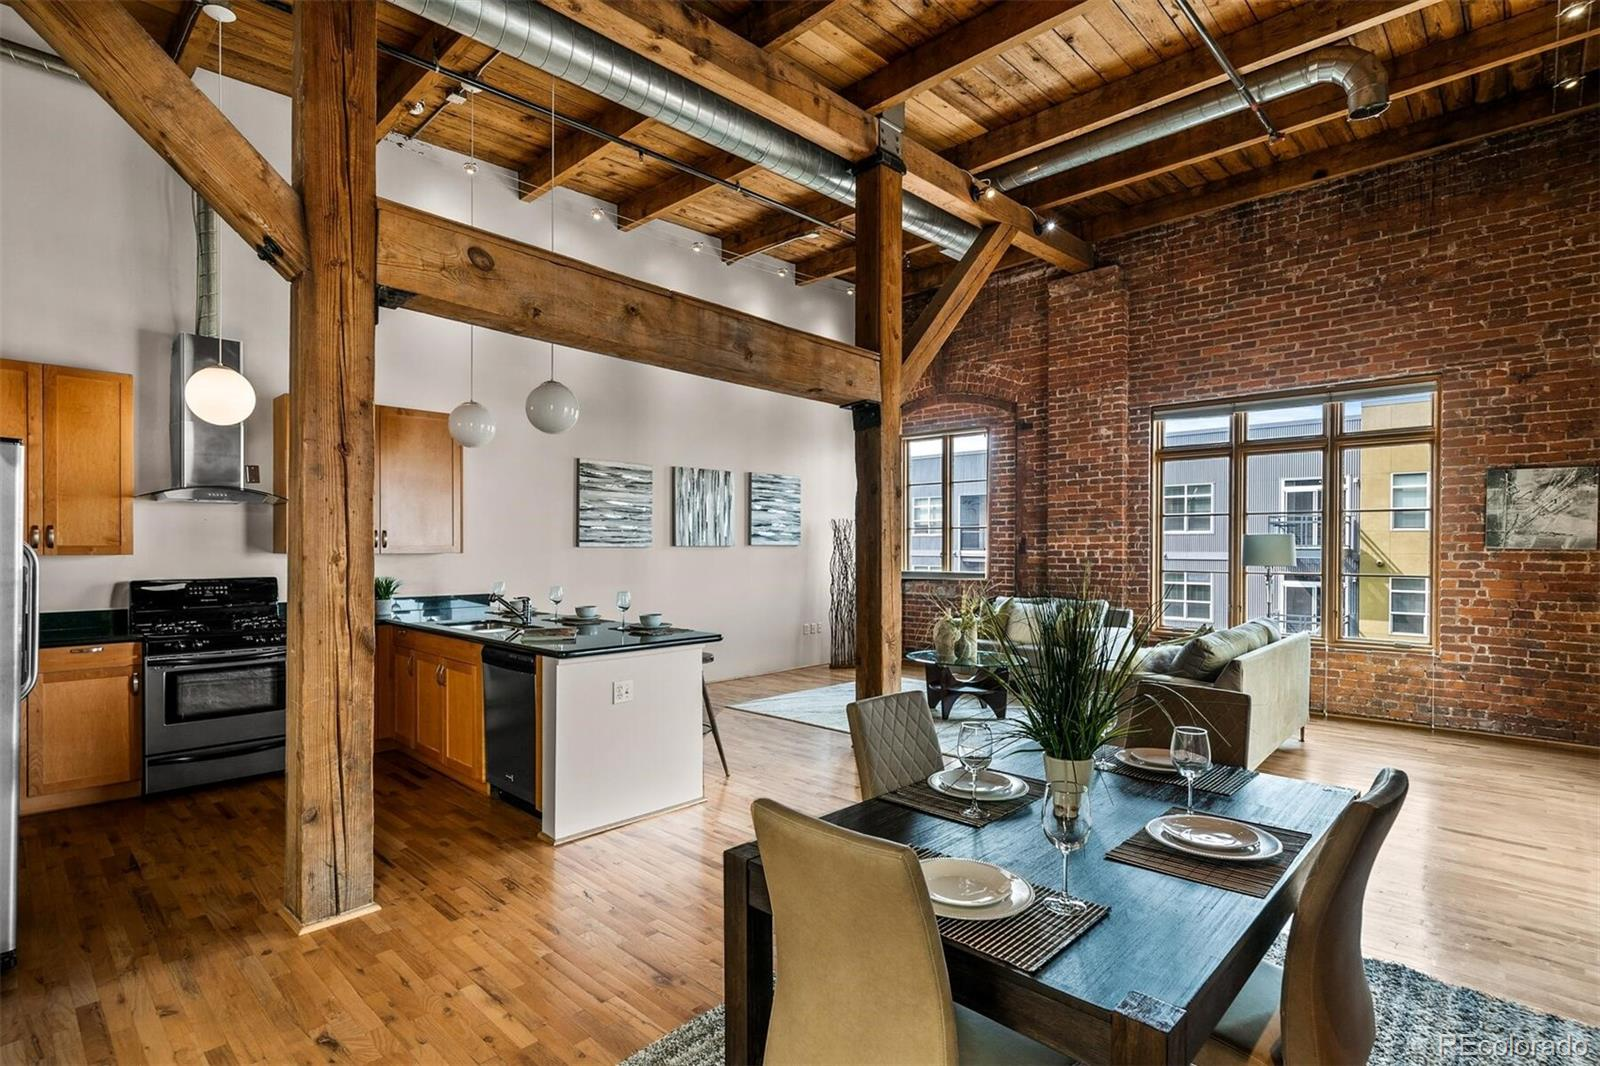 Own a piece of architectural history with this show-stopping, brick and timber residence, in the Watertower Lofts. This end unit's design features include 16' ceilings, exposed brick, oversized windows which provides a dramatic bank of natural light, timber beams, hardwood floors, and a spacious balcony with city views! The well-equipped kitchen boasts granite countertops, a peninsula with bar seating, abundant cabinets, stainless steel appliances, and pantry. Built in 1896, the building was converted to lofts in 2002 and provides locked entry door to a welcoming lobby. Gym facility, and extra storage space are in the lower level. As an added bonus, one deeded parking space in the covered and secure community garage. Located in the heart of the Ball Park Neighborhood, this loft is just three blocks to Union Station and only a casual stroll to Coors Field, LoDo, RiNo and more. Experience the coolest loft building in town!